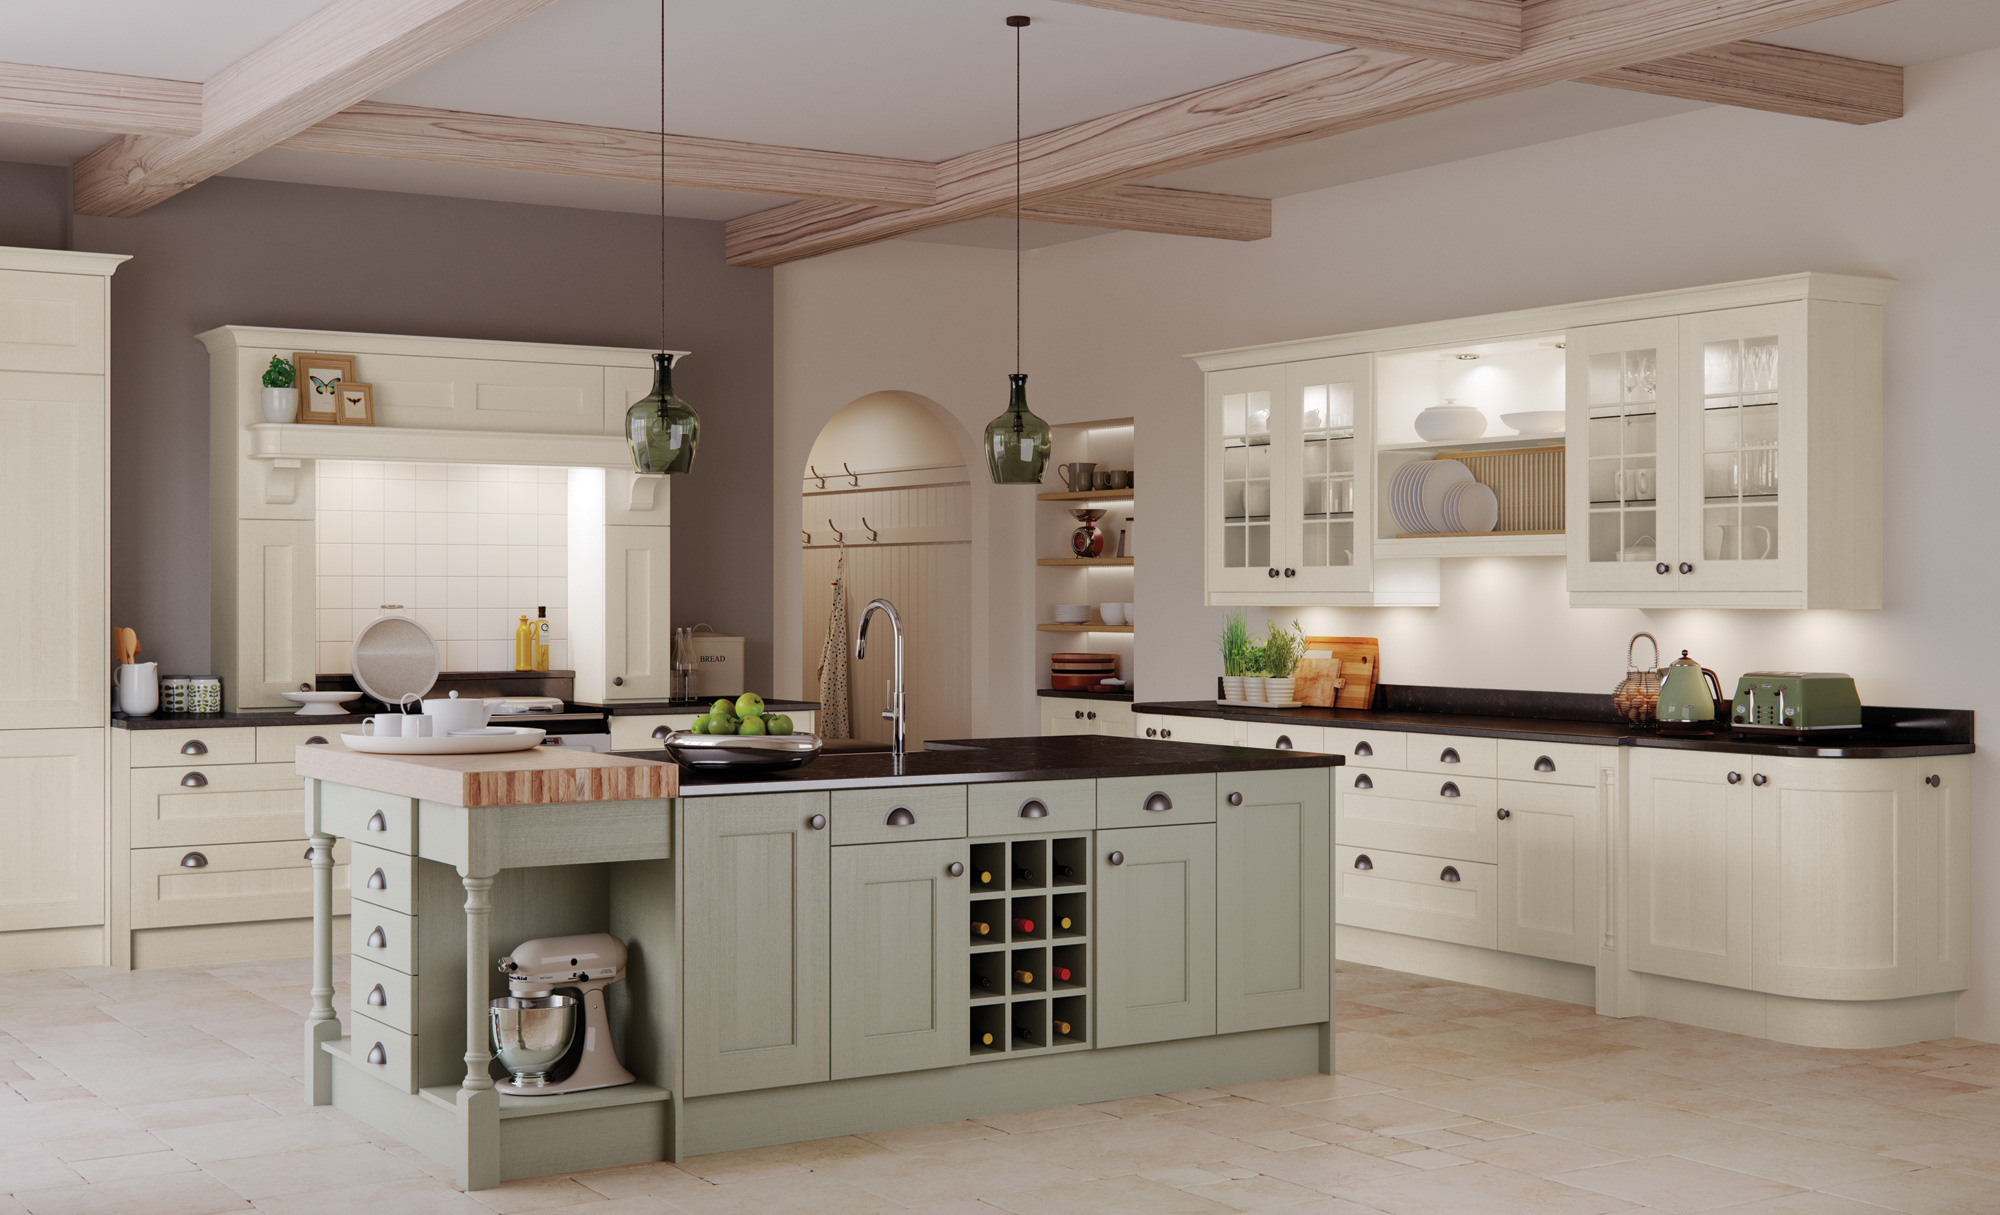 http://www.ianwoodbespokeinteriors.co.uk/wp-content/uploads/2017/01/classic-traditional-country-wakefield-painted-ivory-sage-green-kitchen-hero-1.jpg